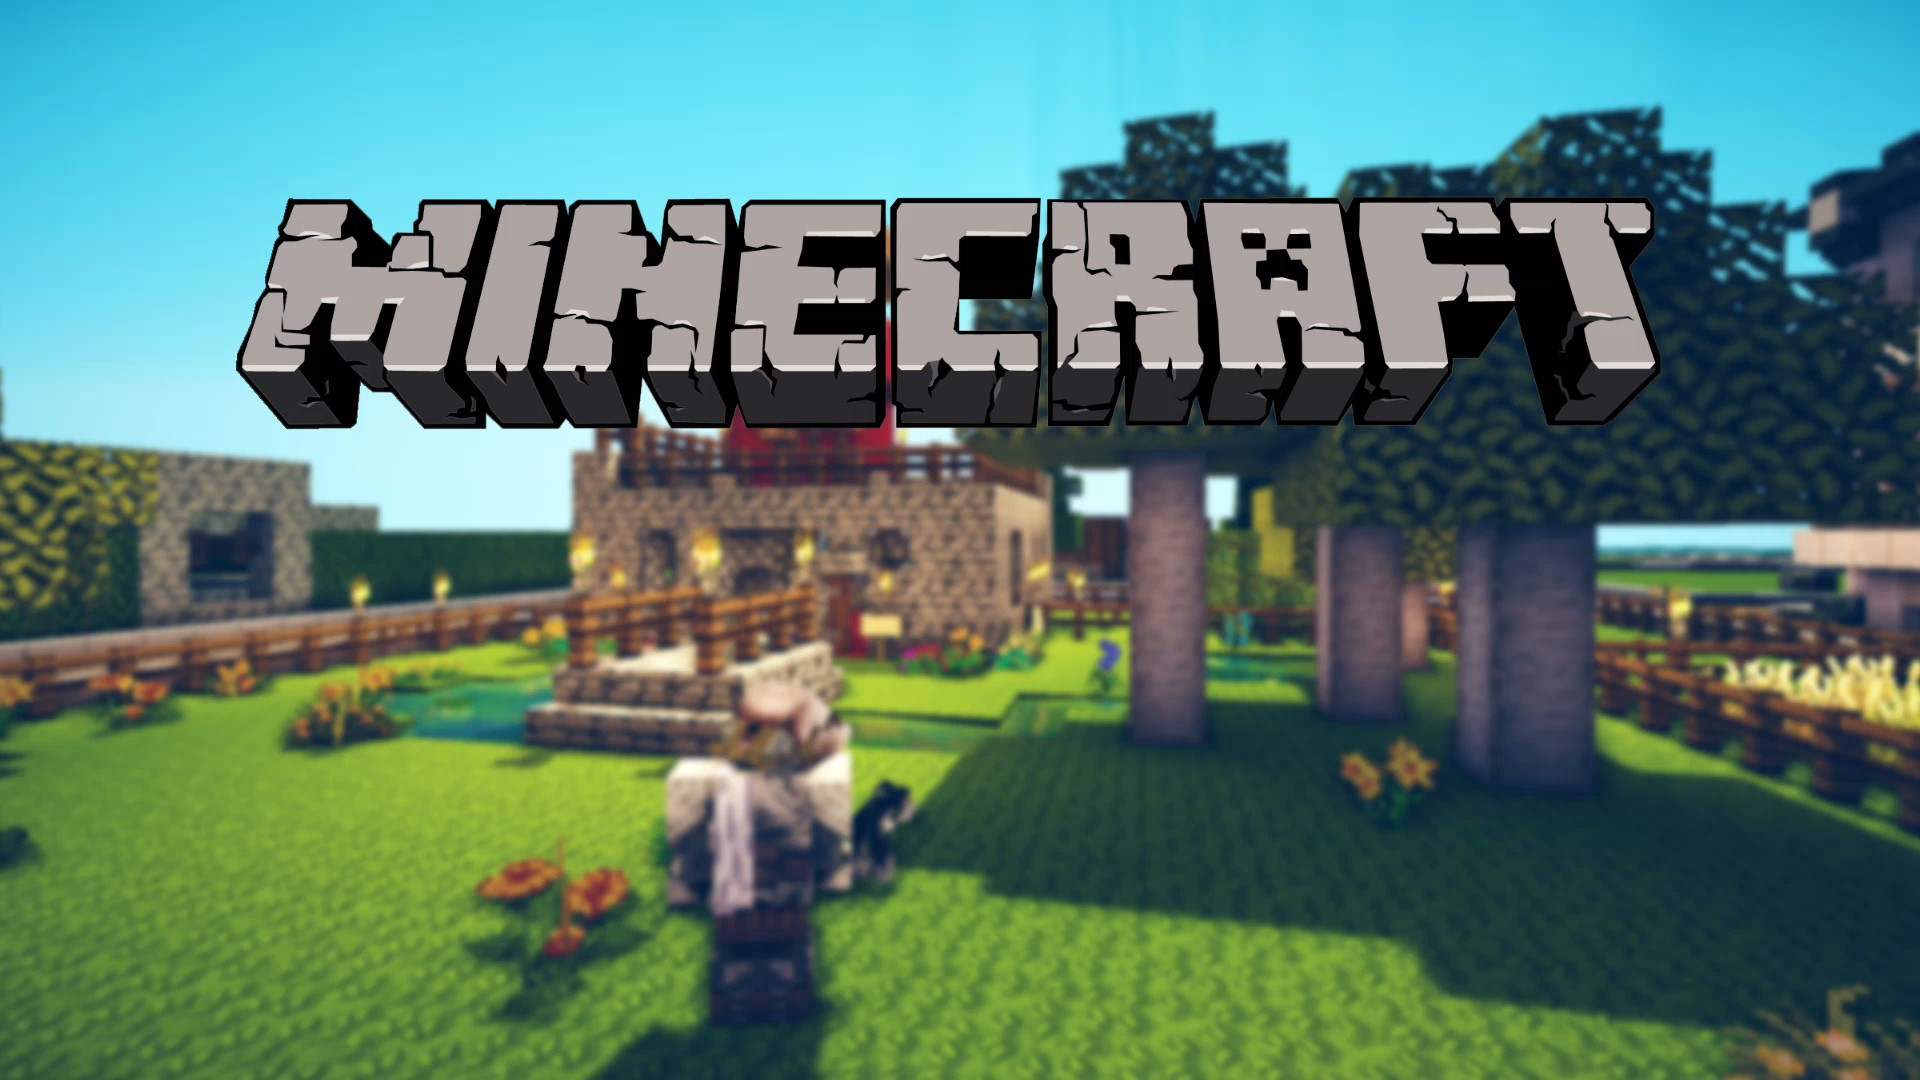 minecraft hd wallpaper 2018 2118 hd wallpapers   Powered by Redstone 1920x1080